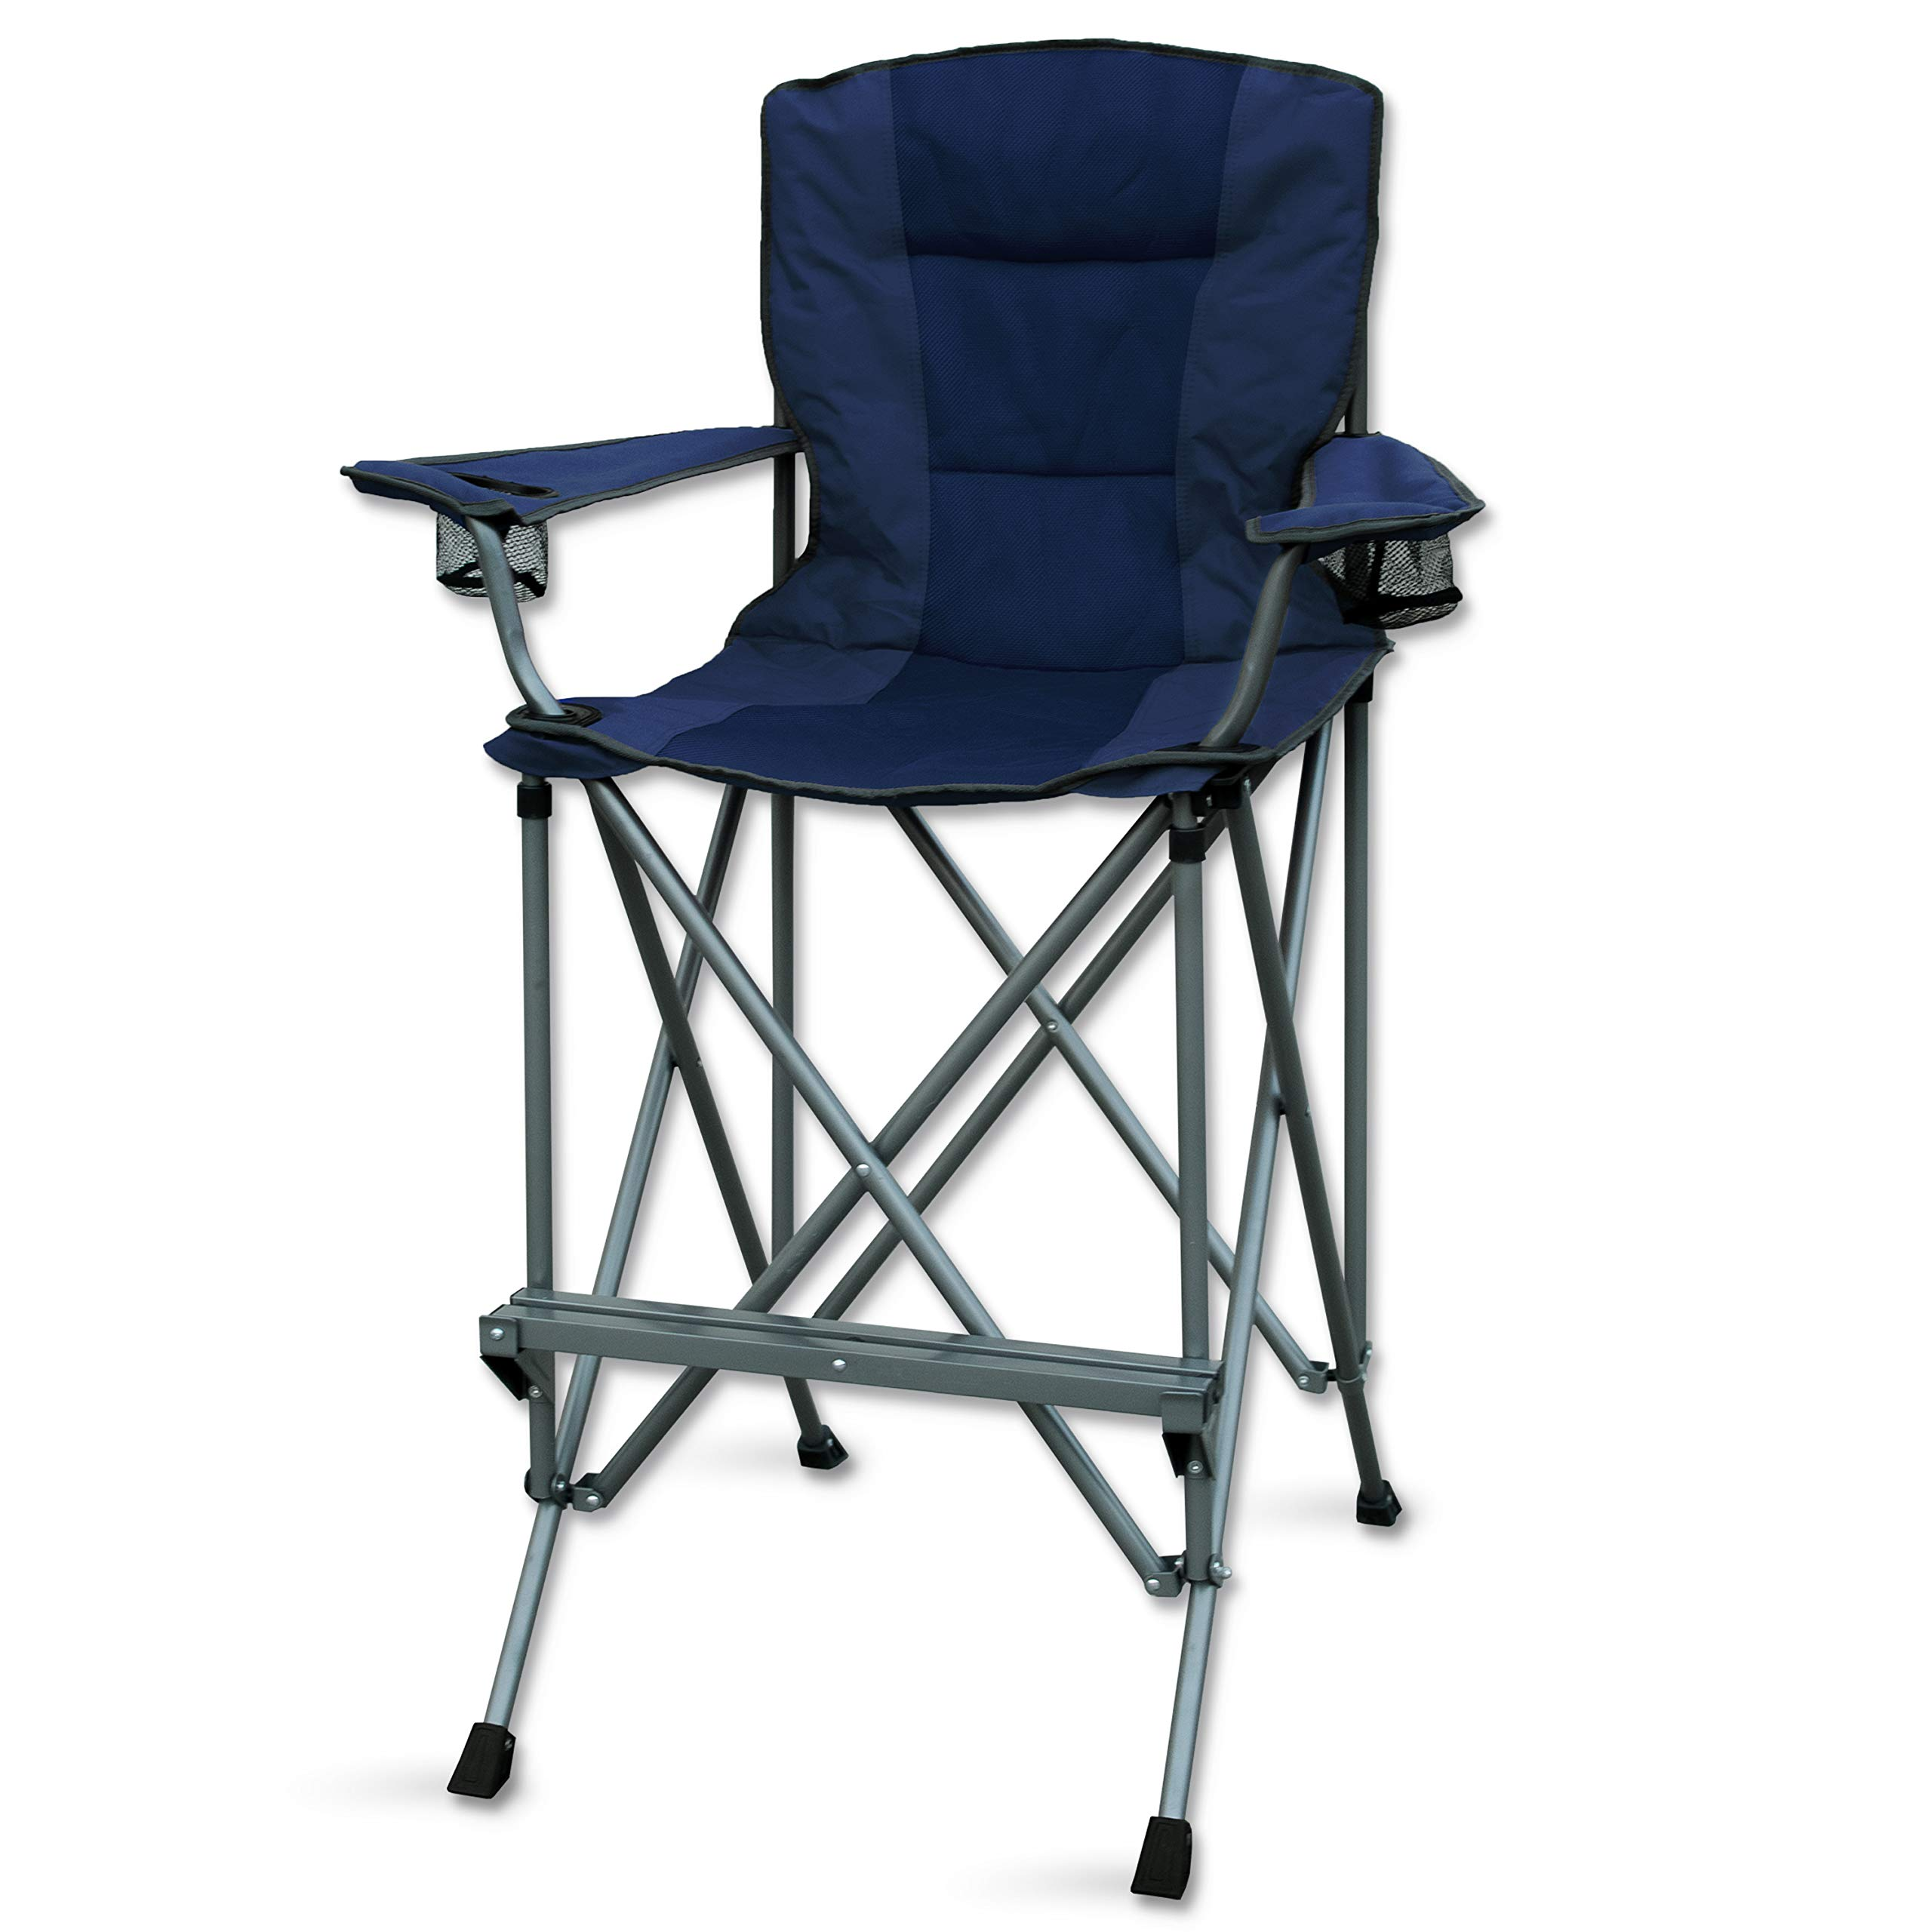 RMS Outdoors Extra Folding Chair